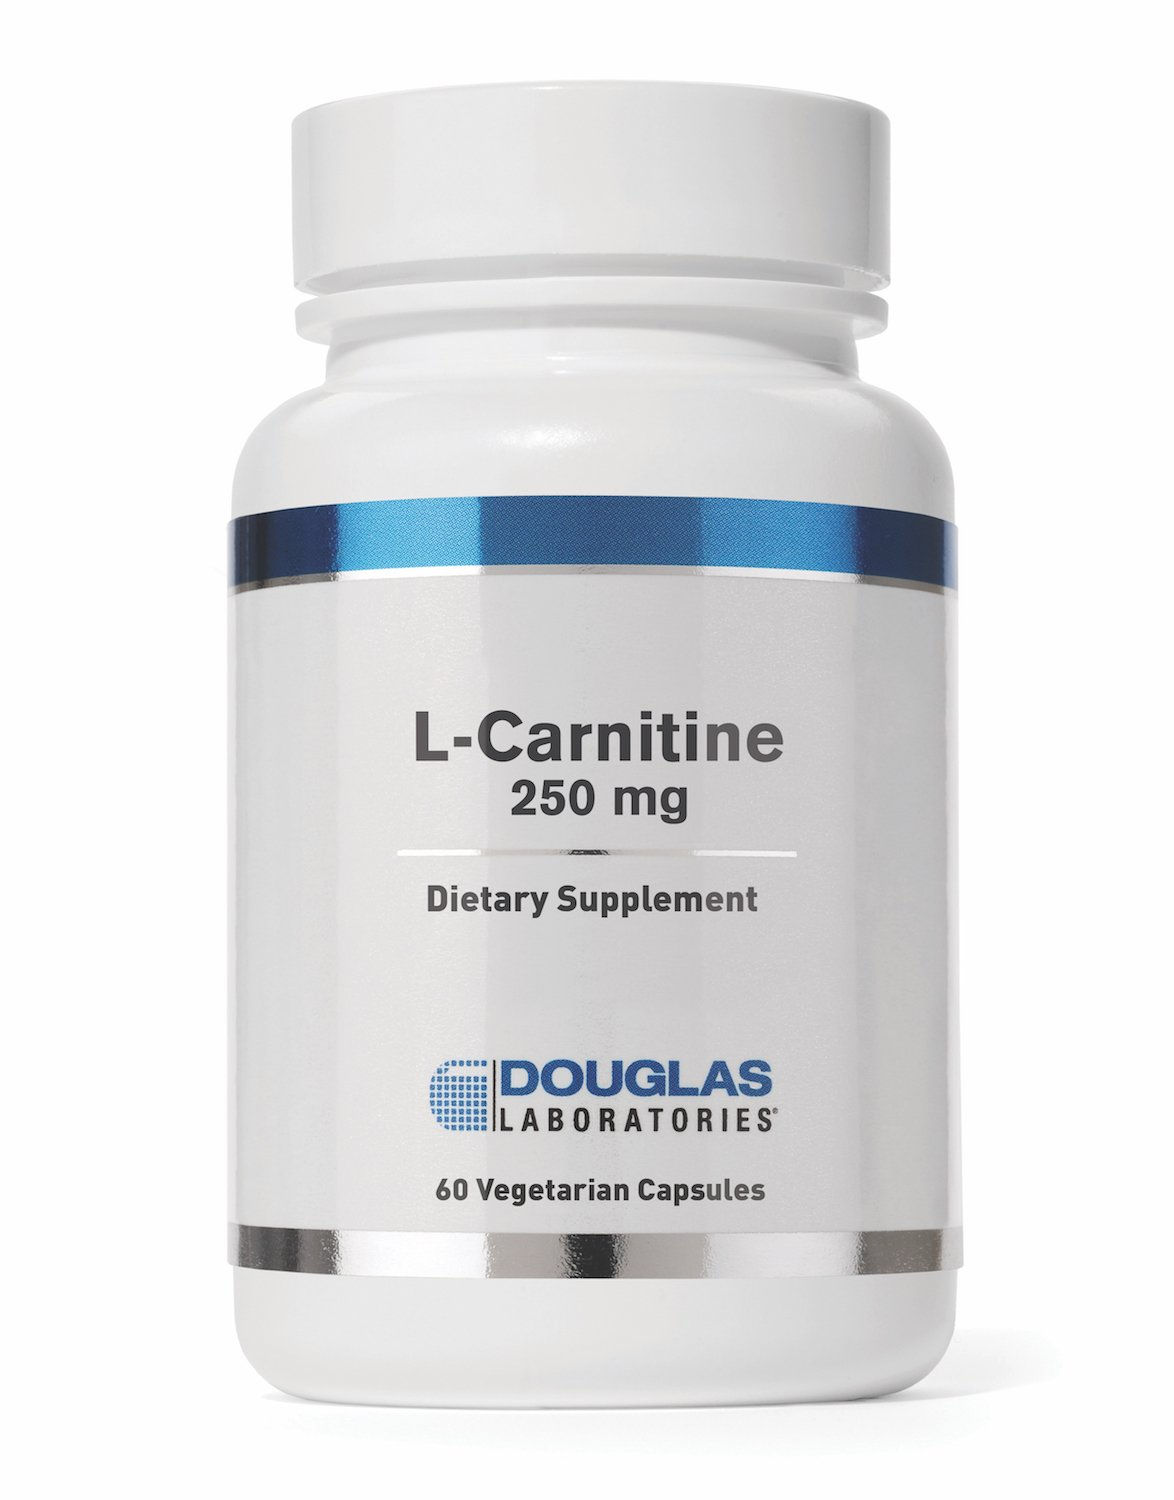 Douglas Laboratories® - L-Carnitine 250 mg. - Supports Heart Muscle Function and Skeletal Muscle Performance* - 60 Capsules